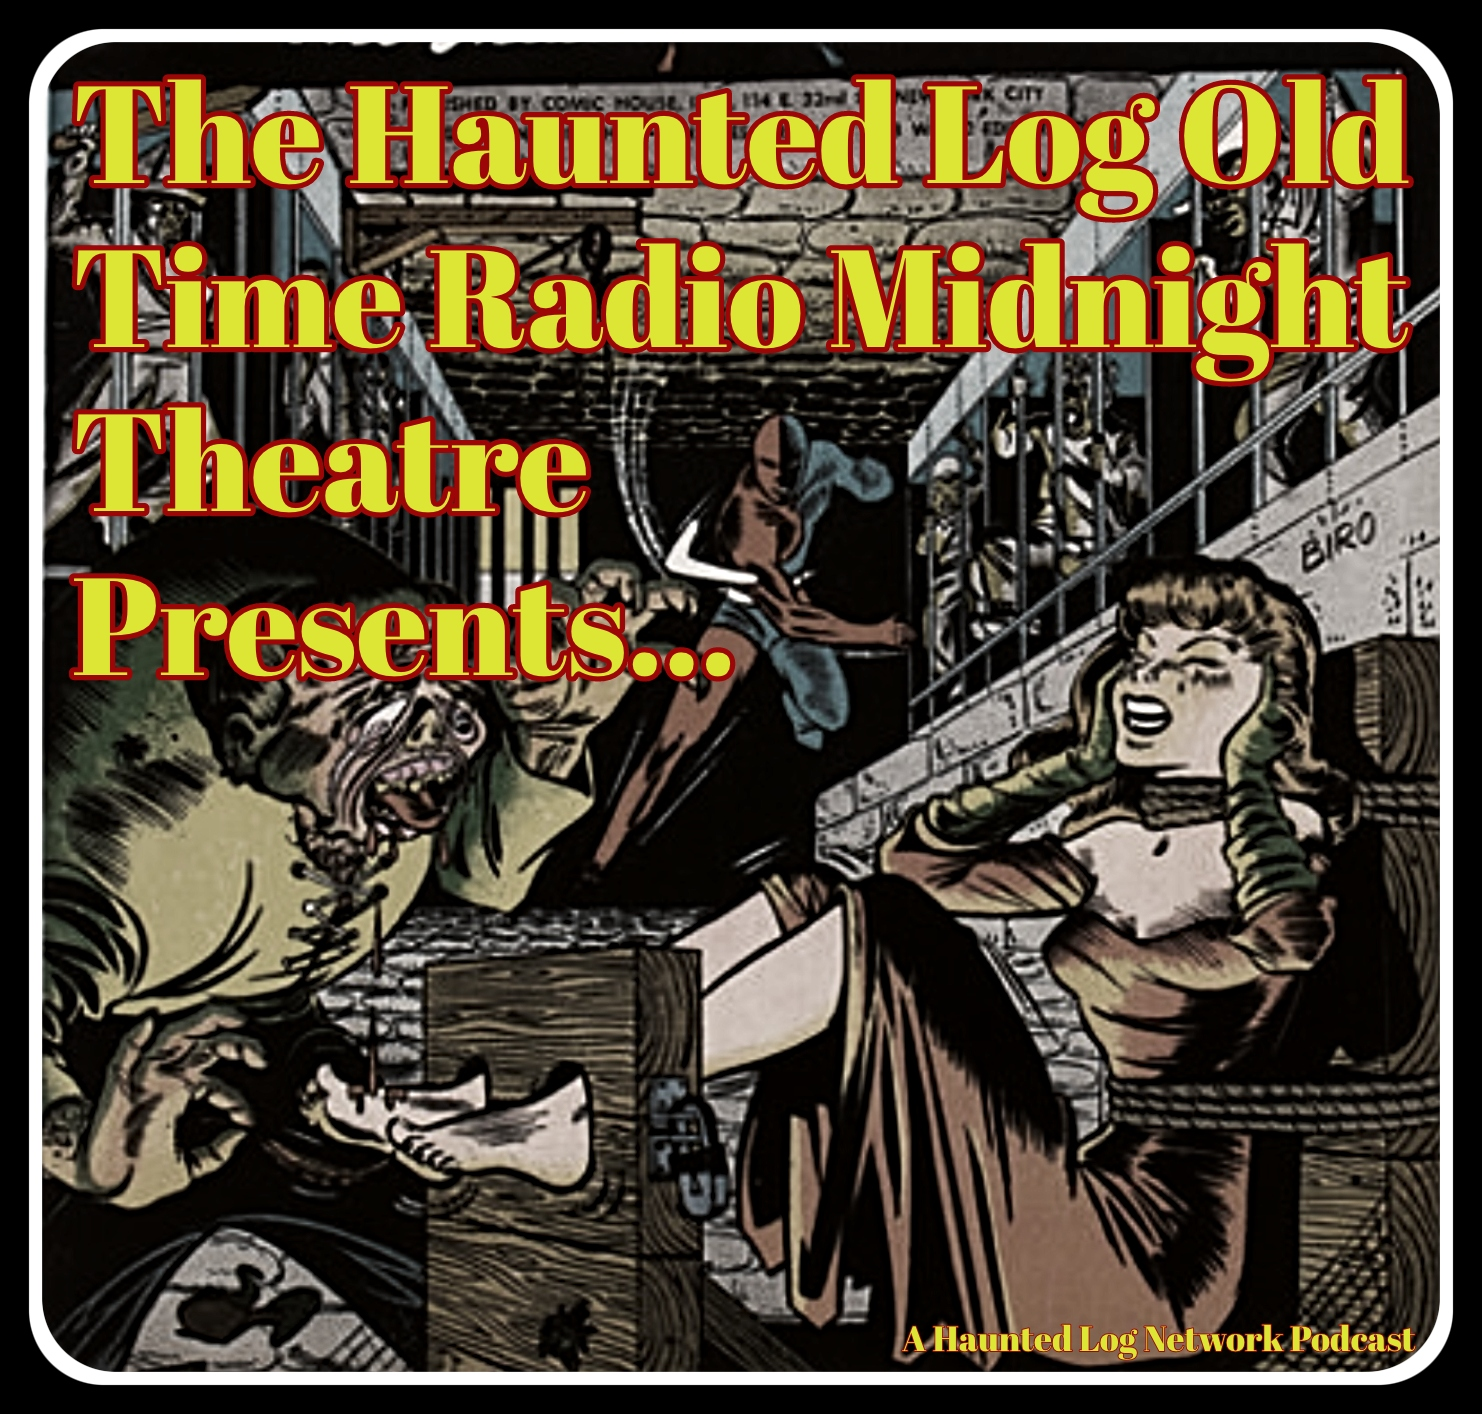 Ep 62 The Haunted Log Old Time Radio Midnight Theatre Presents ... X Minus 1 Marionettes Inc.